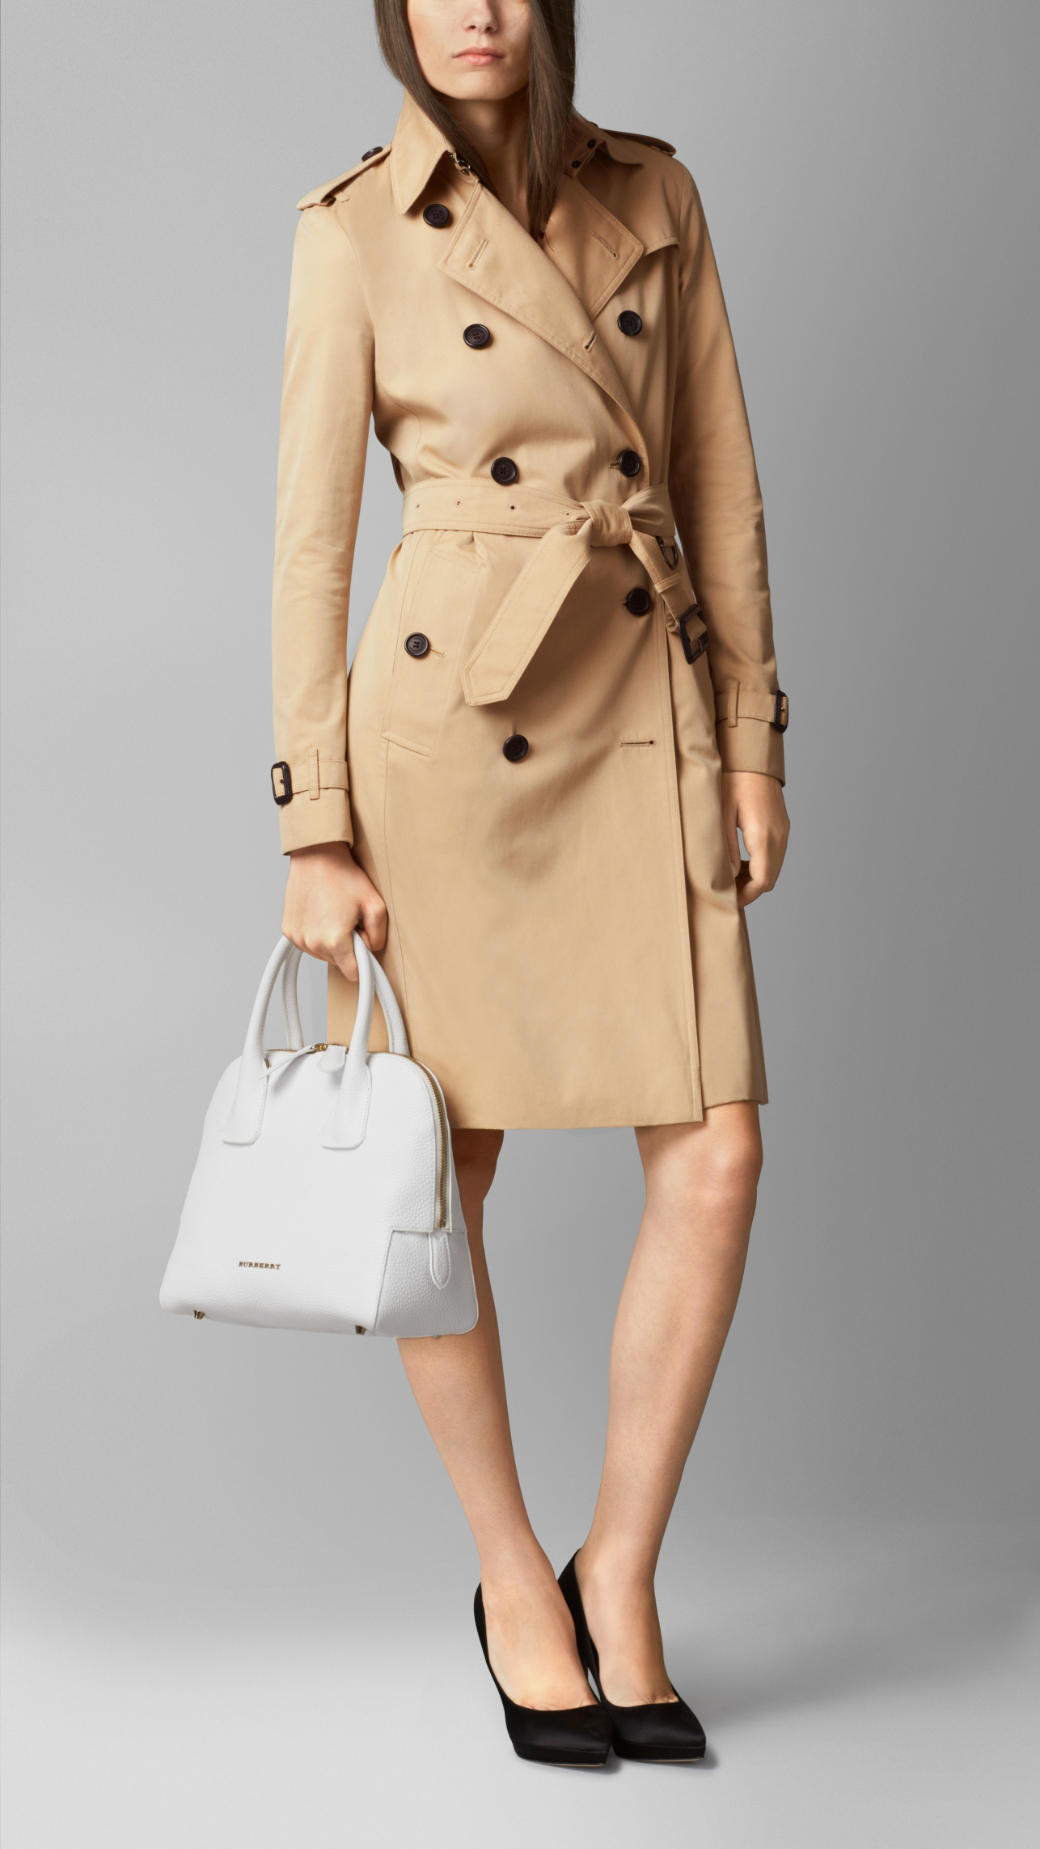 Lyst - Burberry Small Grainy Leather Bowling Bag in White 6408ae43482a5